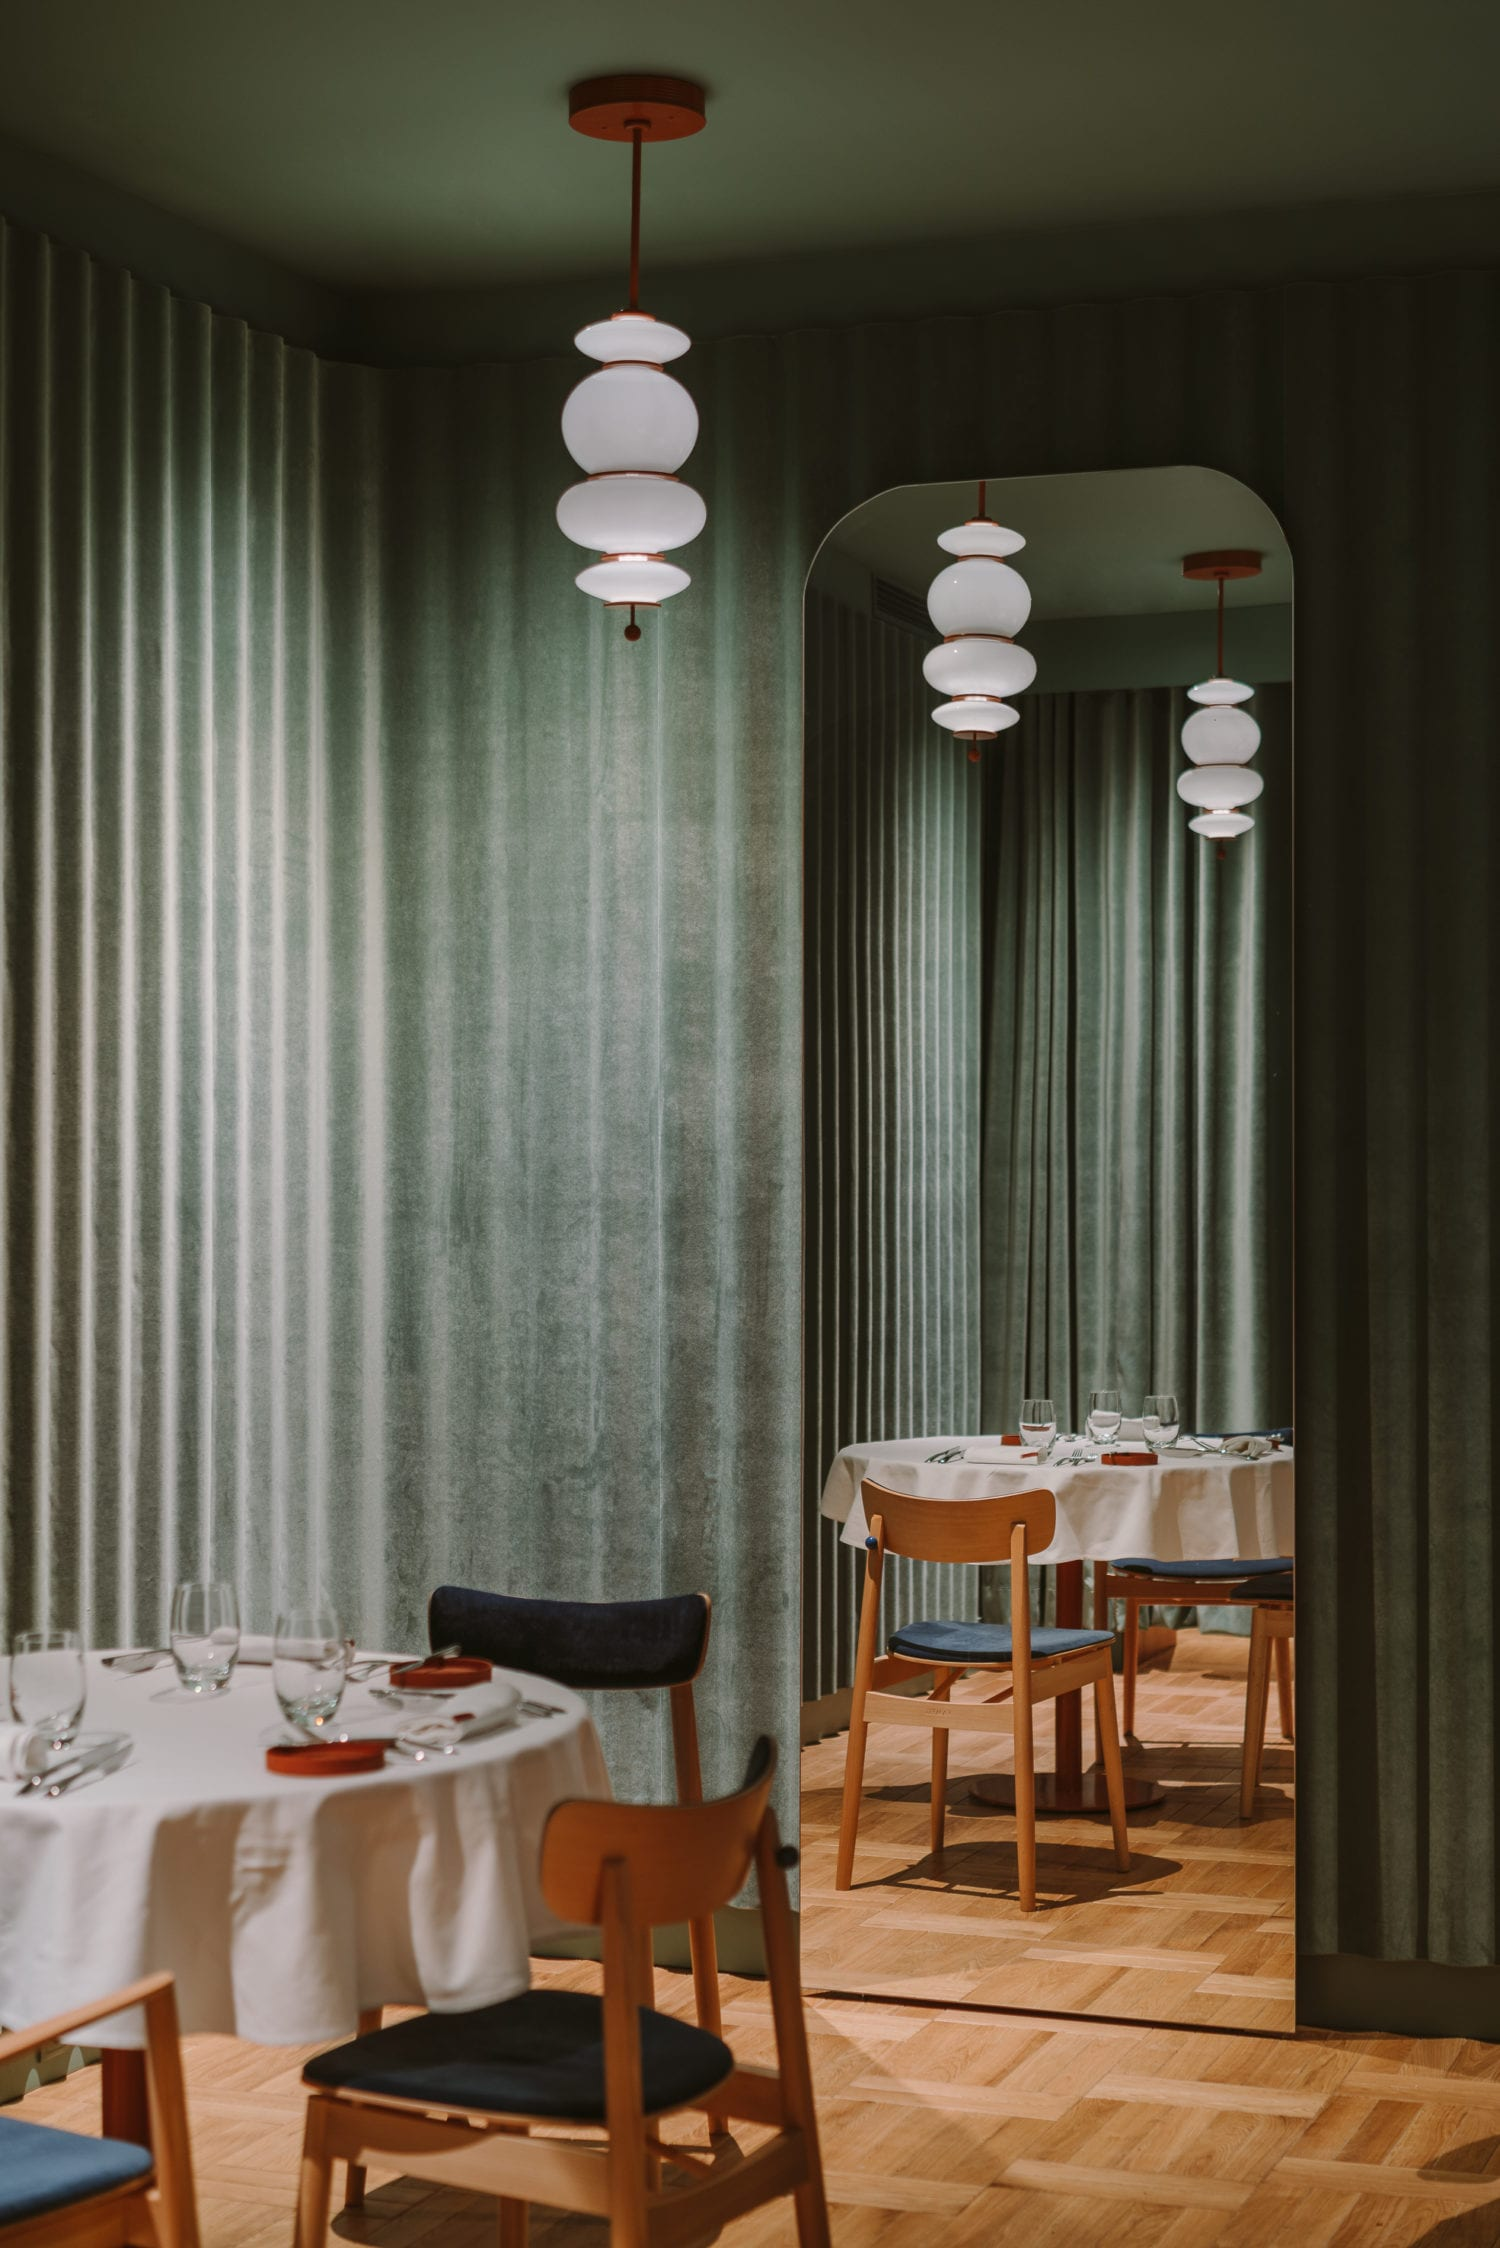 Opasly Tom Restaurant In Warsaw Poland By Buck Studio Yellowtrace 30